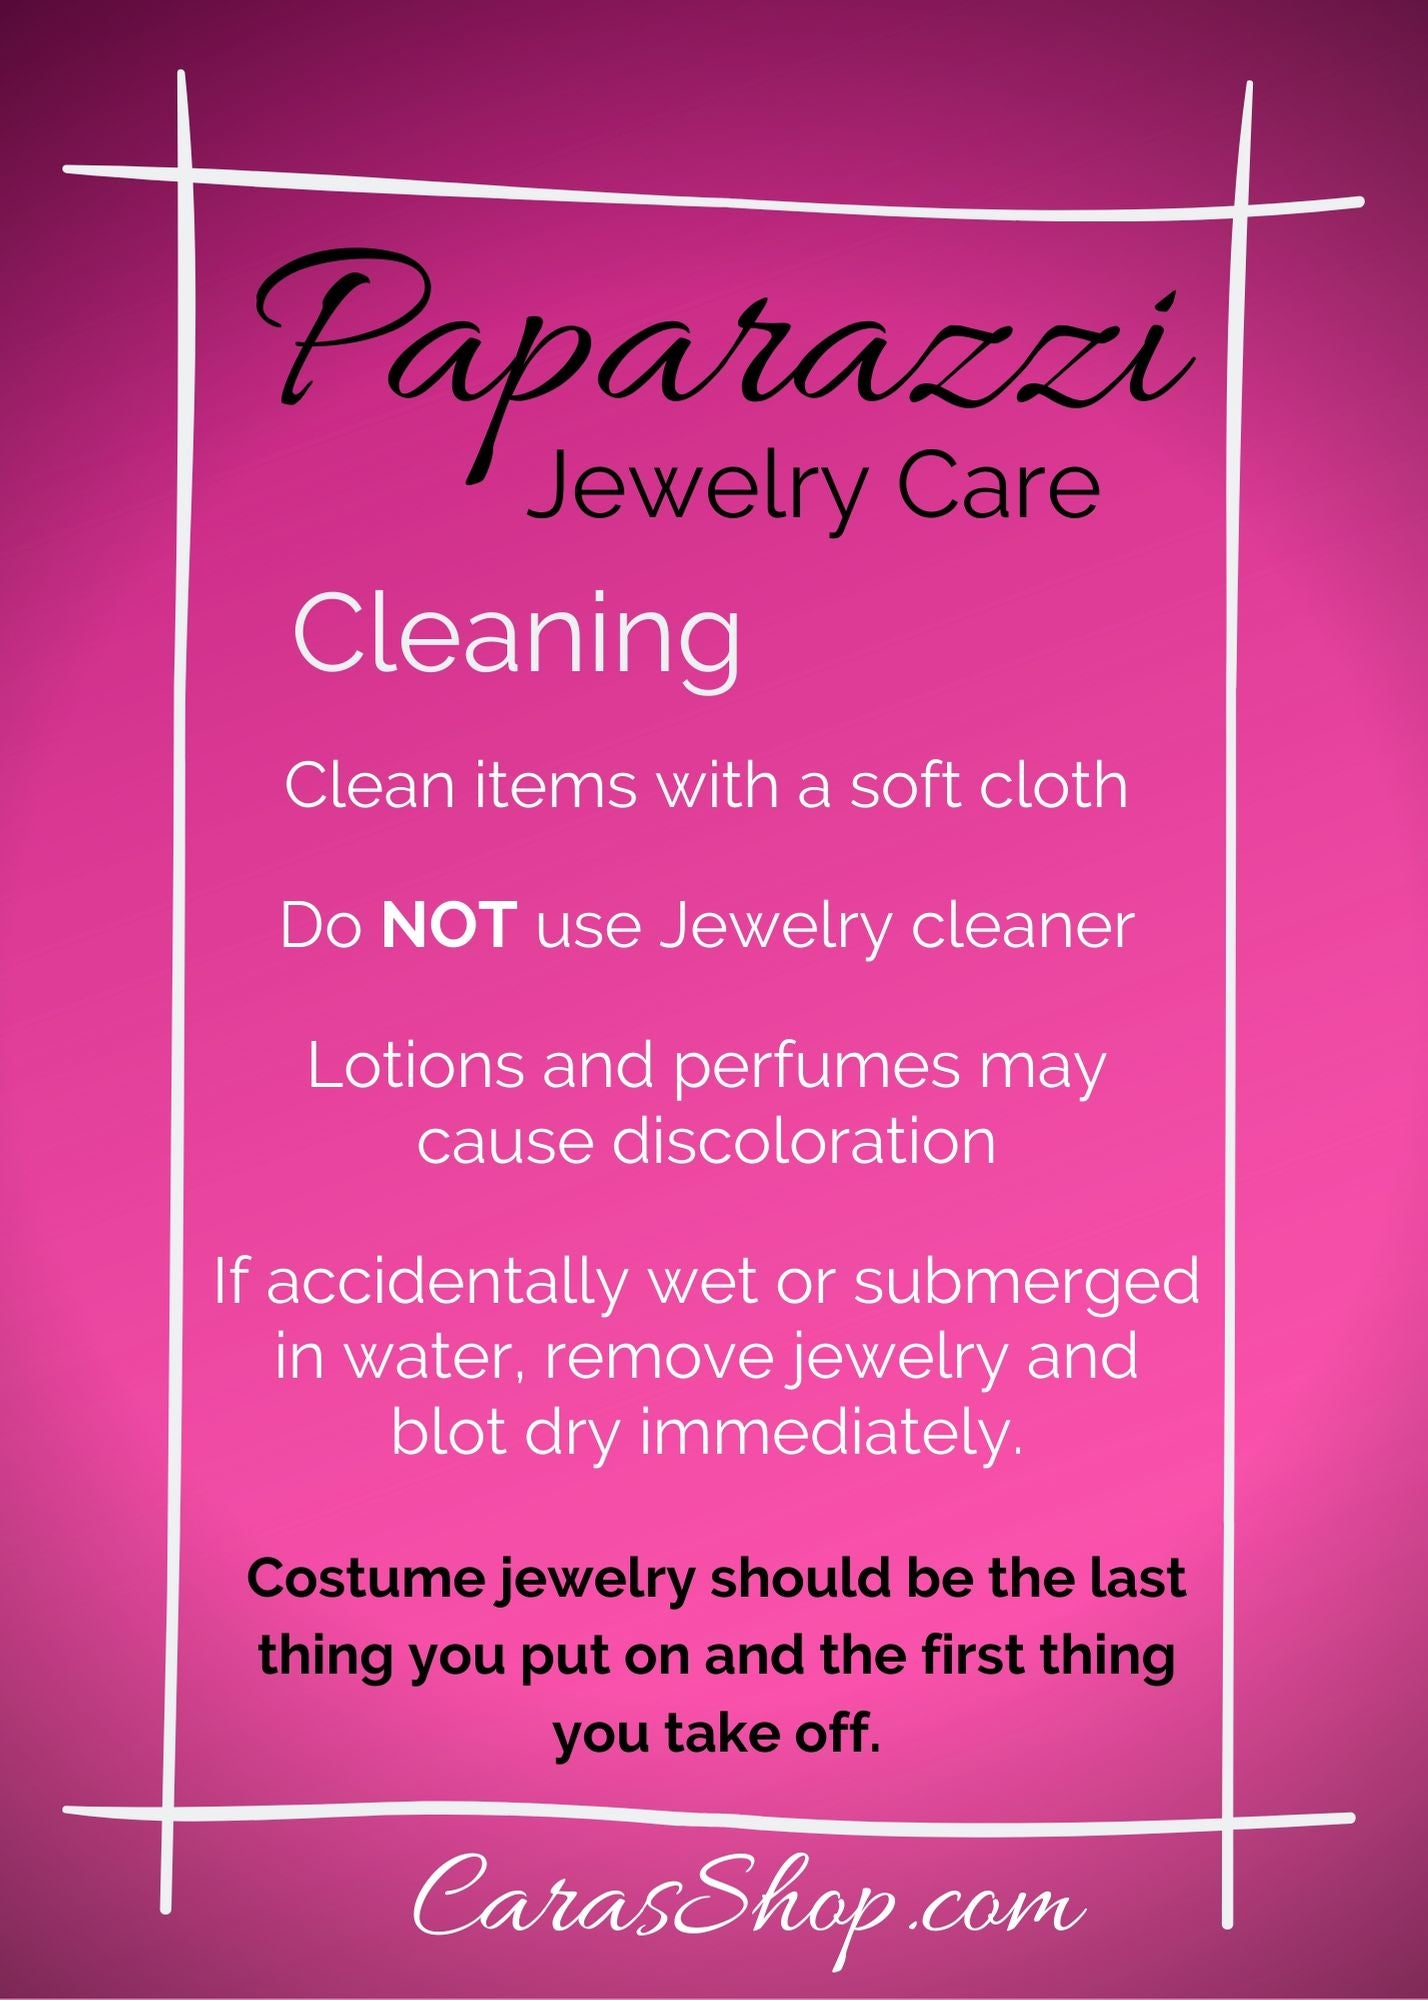 Paparazzi Accessories Jewelry Care Cleaning instructions - CarasShop.com